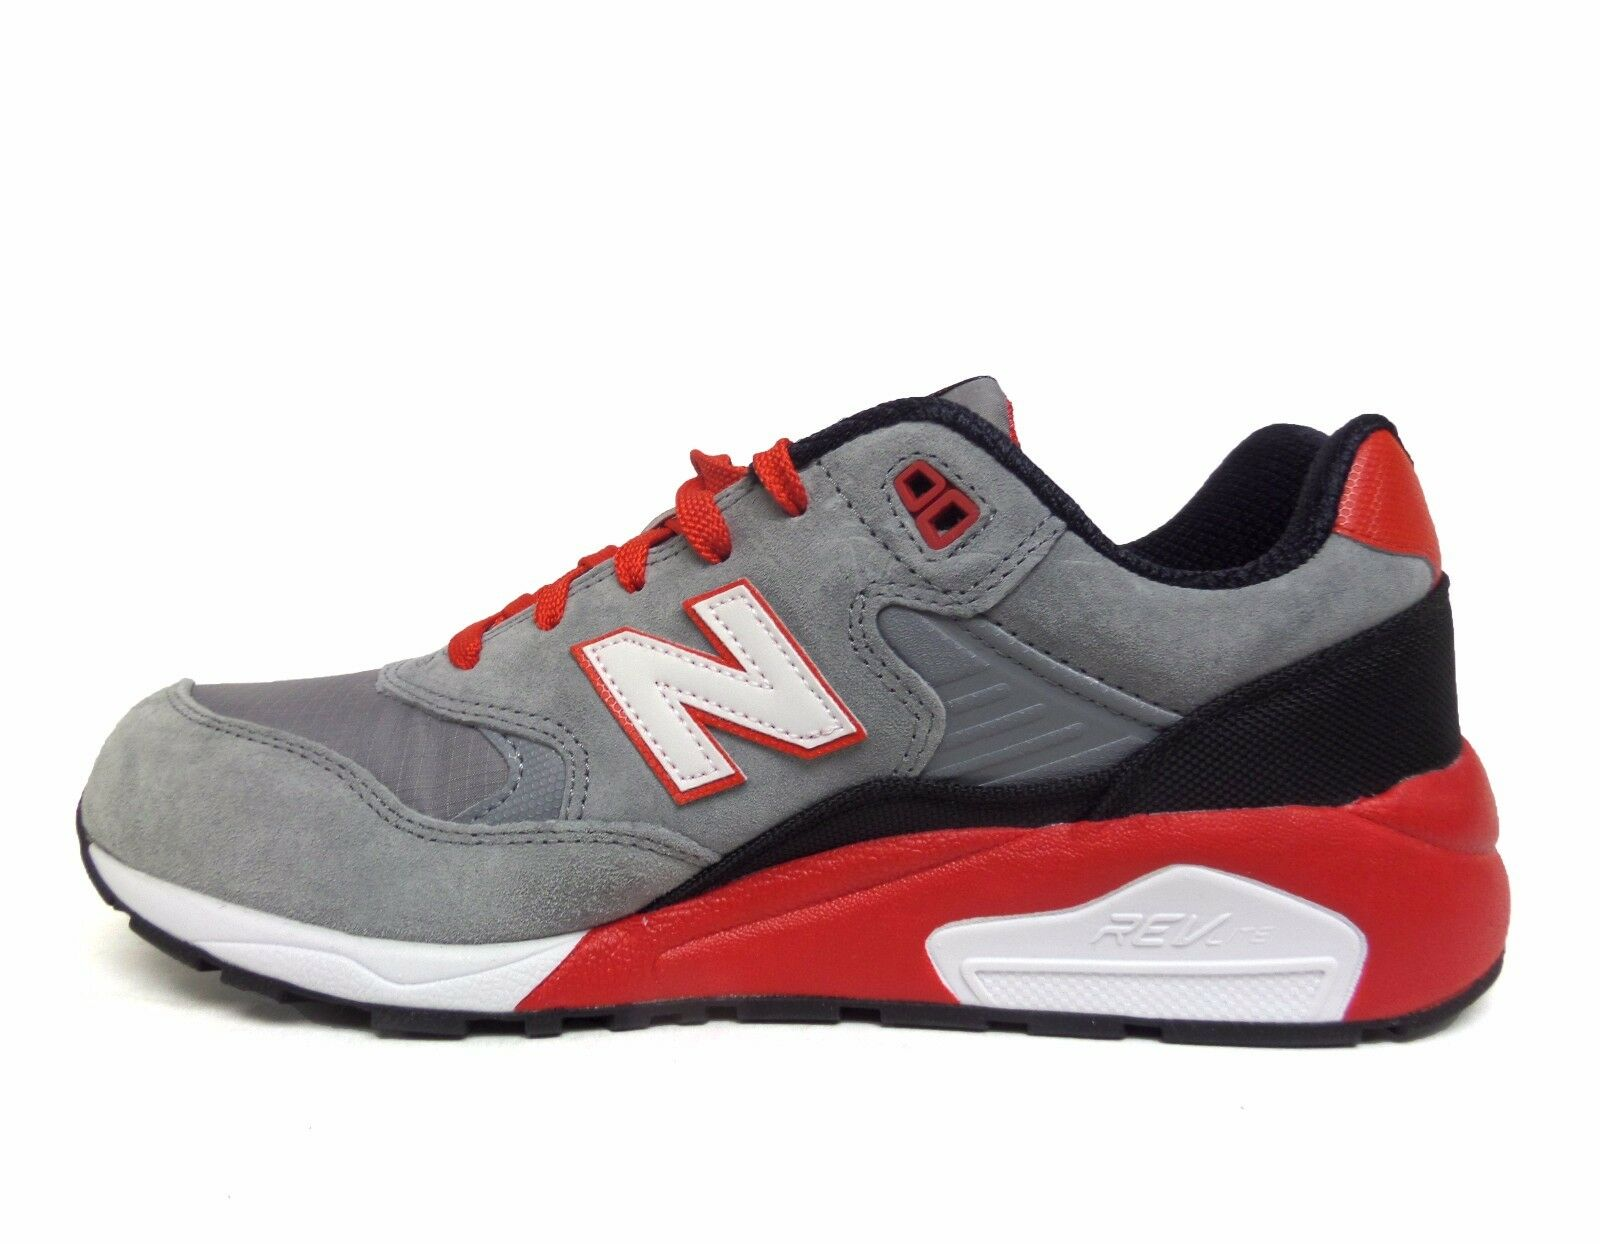 New Balance Men's Mecha Collection Men's Shoes Shoes Men's MRT580SR  a1 150f4f